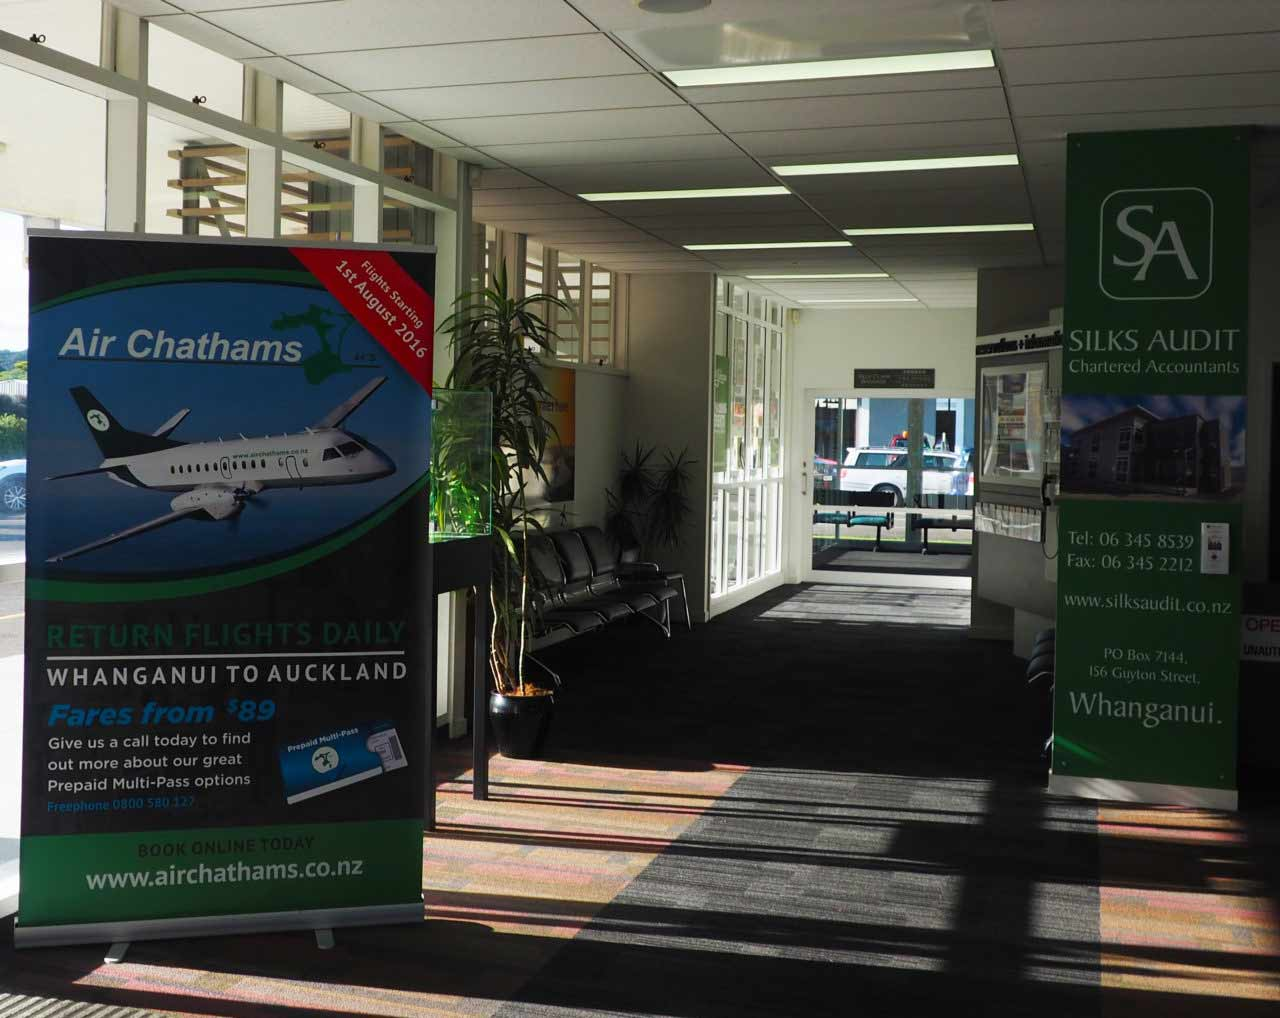 Whanganui Airport Advertising